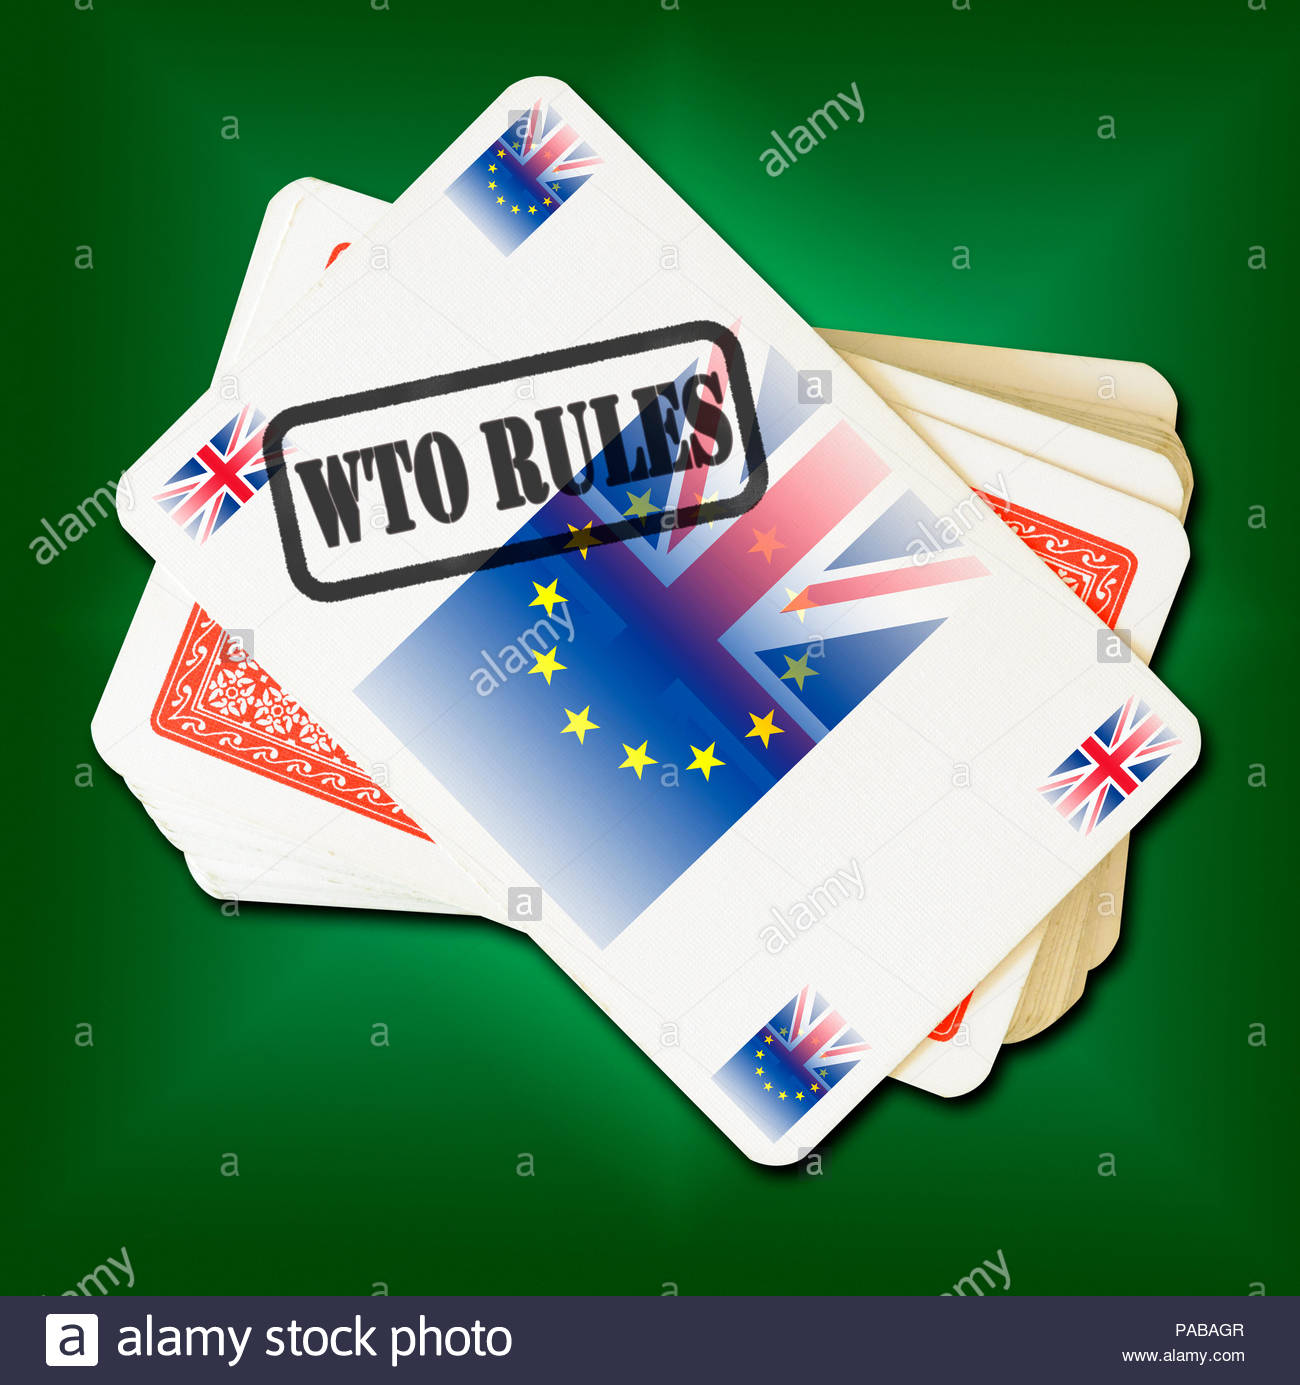 Brexit WTO rules on playing card, Dorset, England, Britain, UK Stock Photo